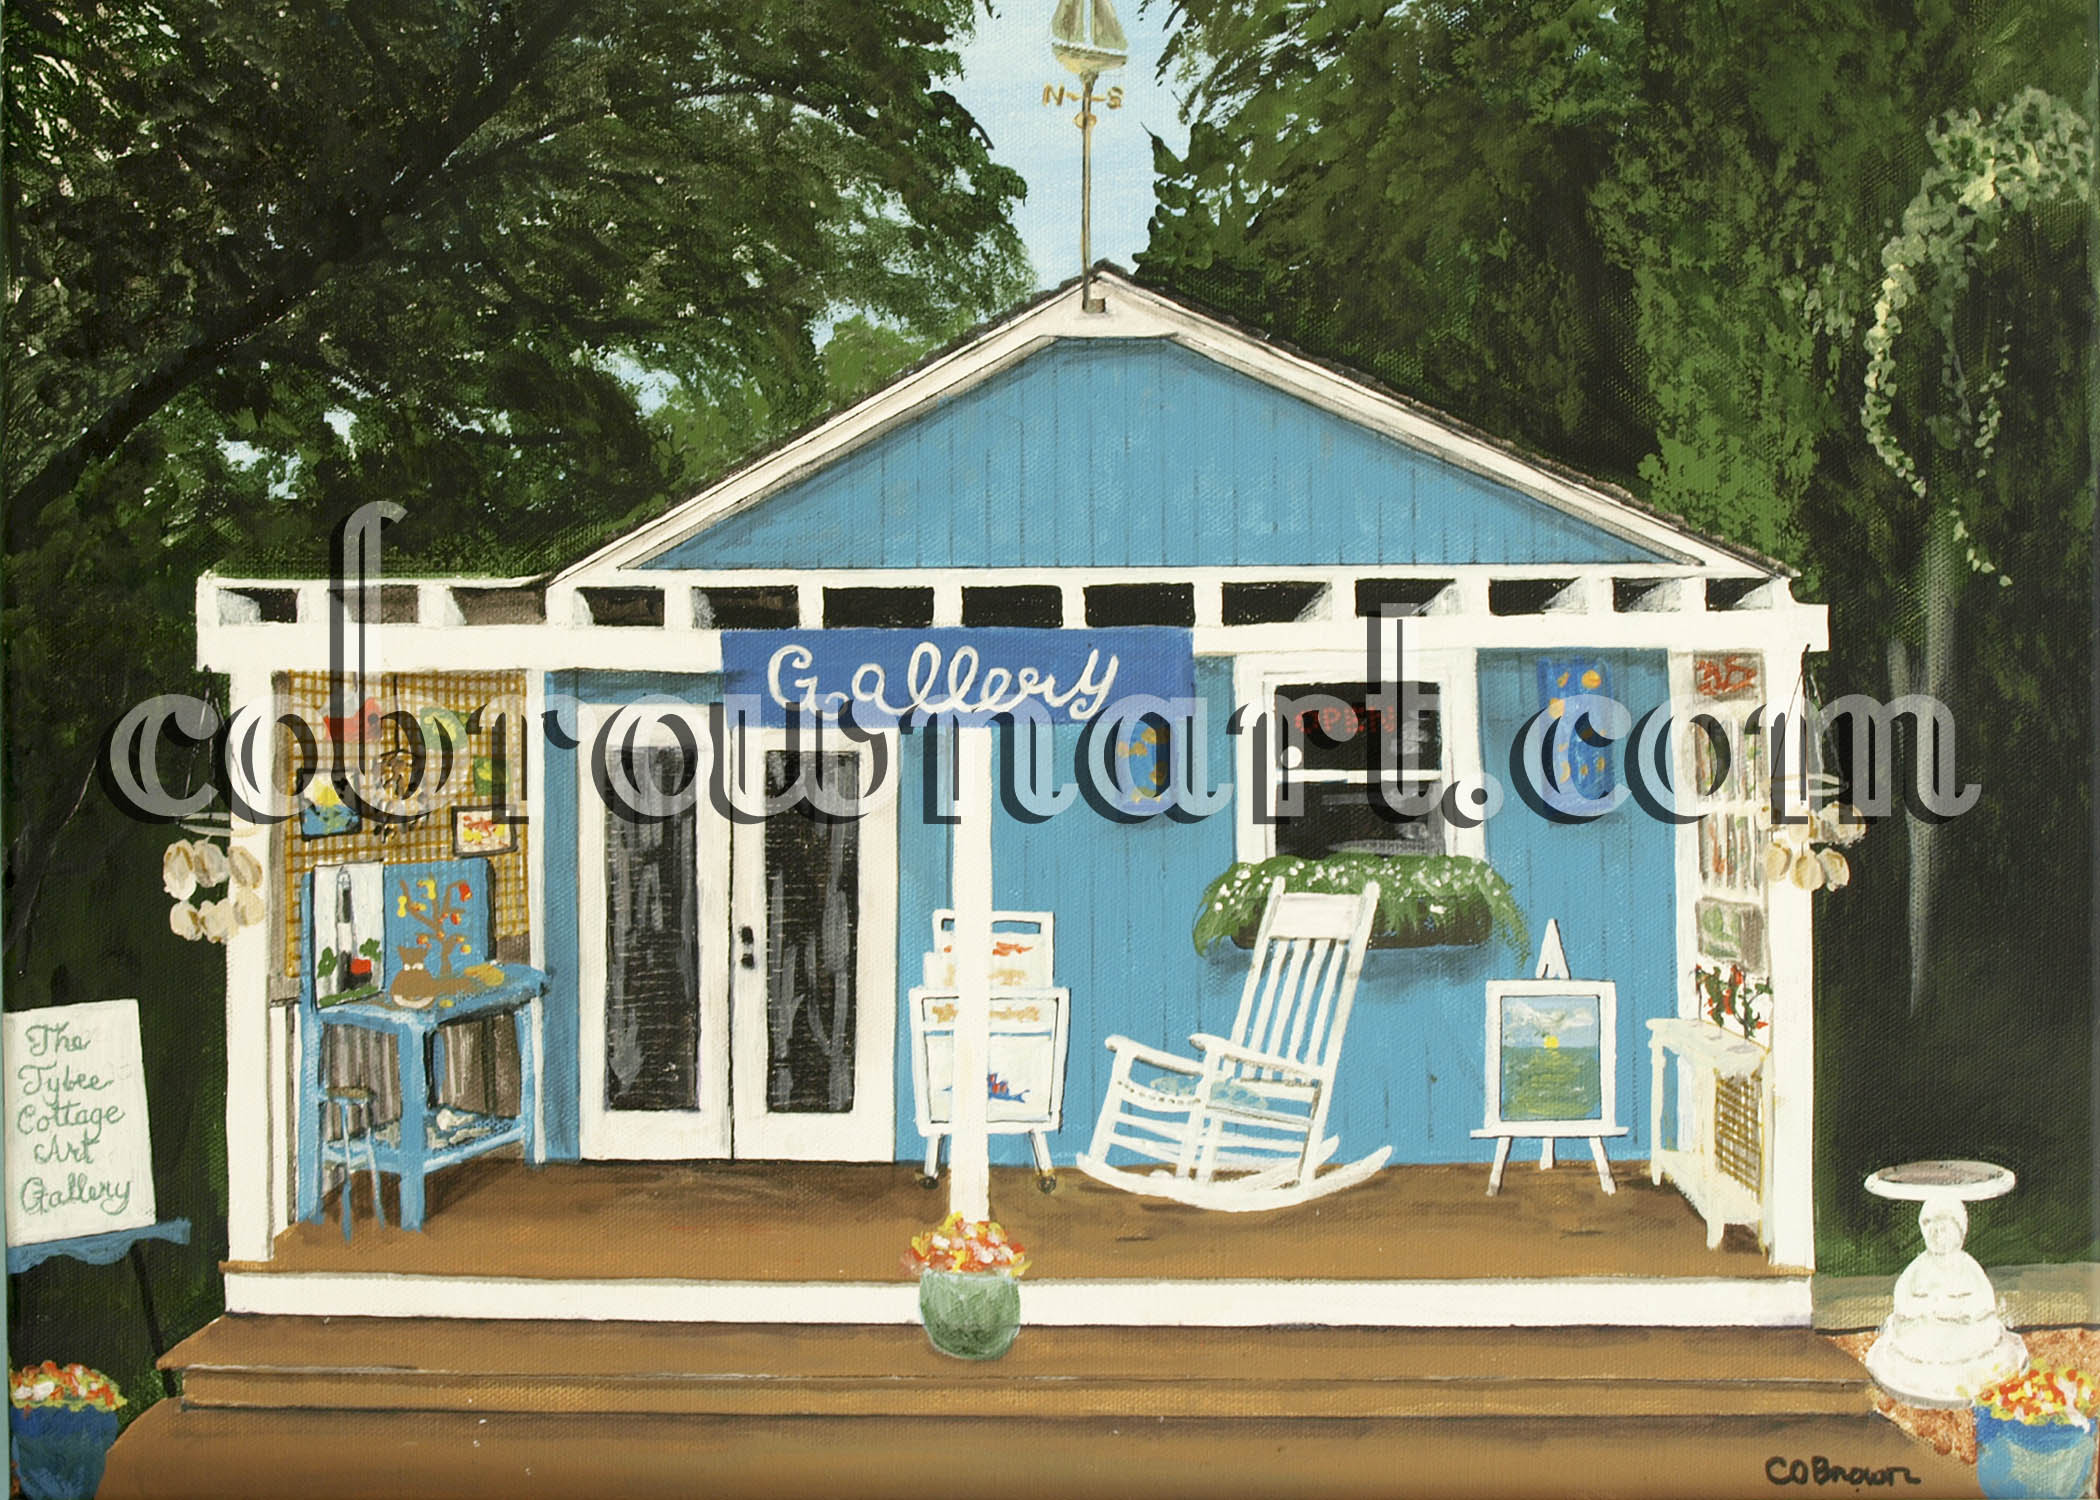 Tybee Cottage Art Gallery